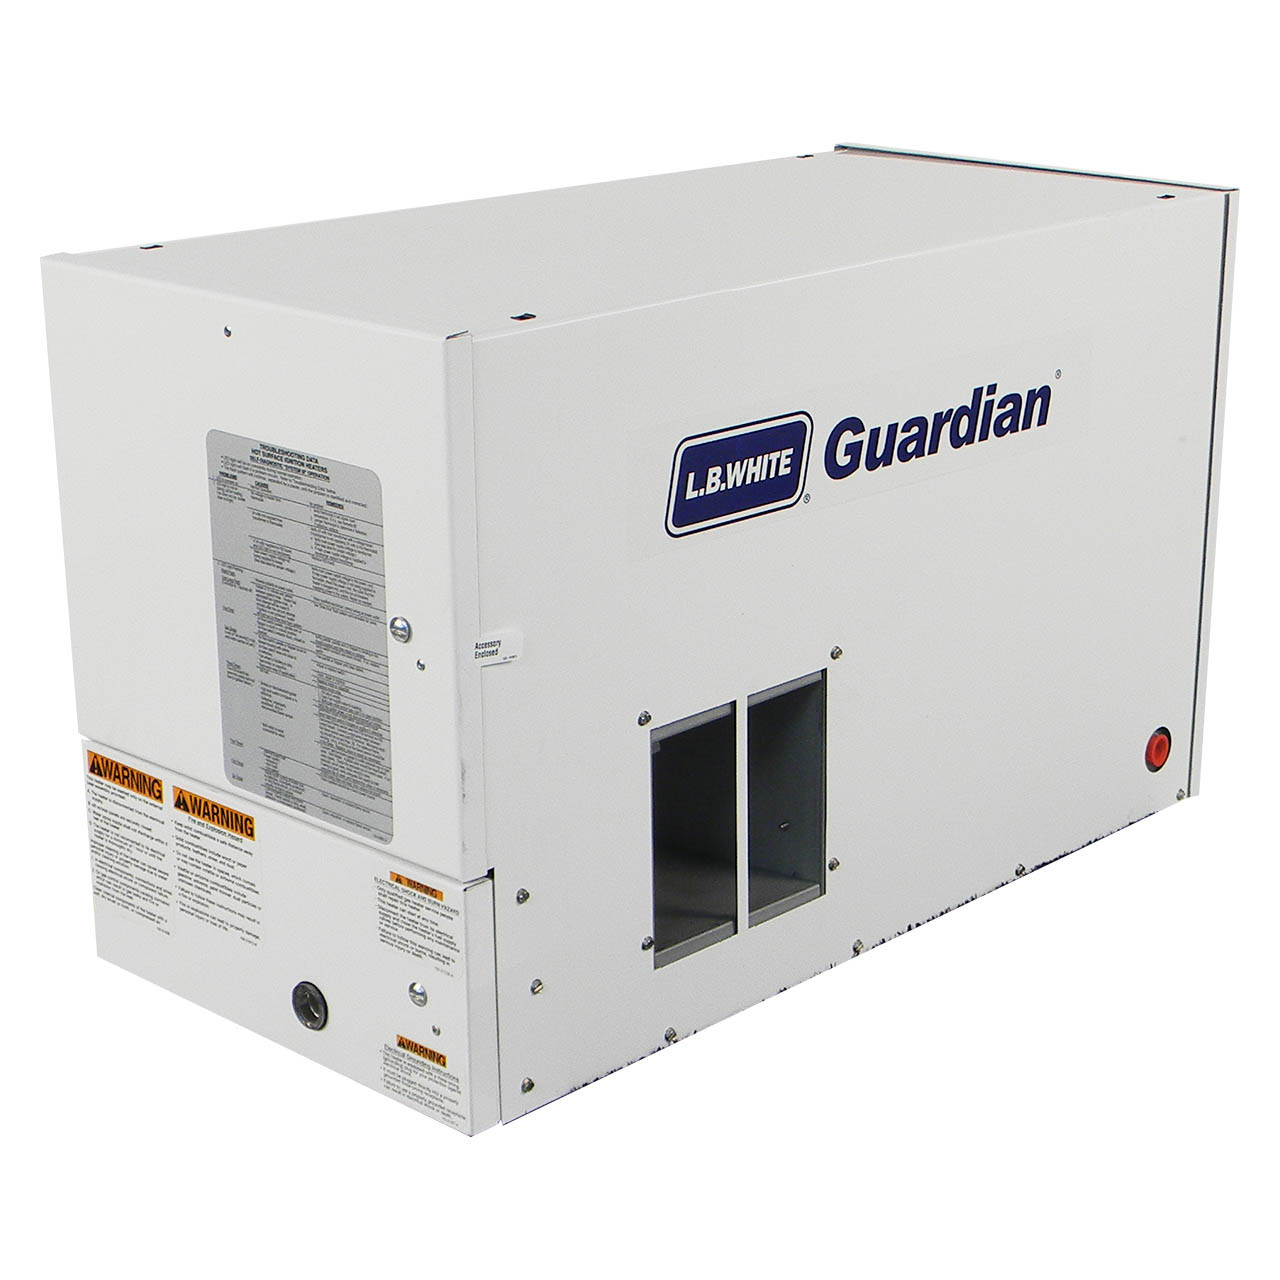 100,000 BTU LP LB White Guardian 100 Forced Air Heater w// Hot Surface Ignition